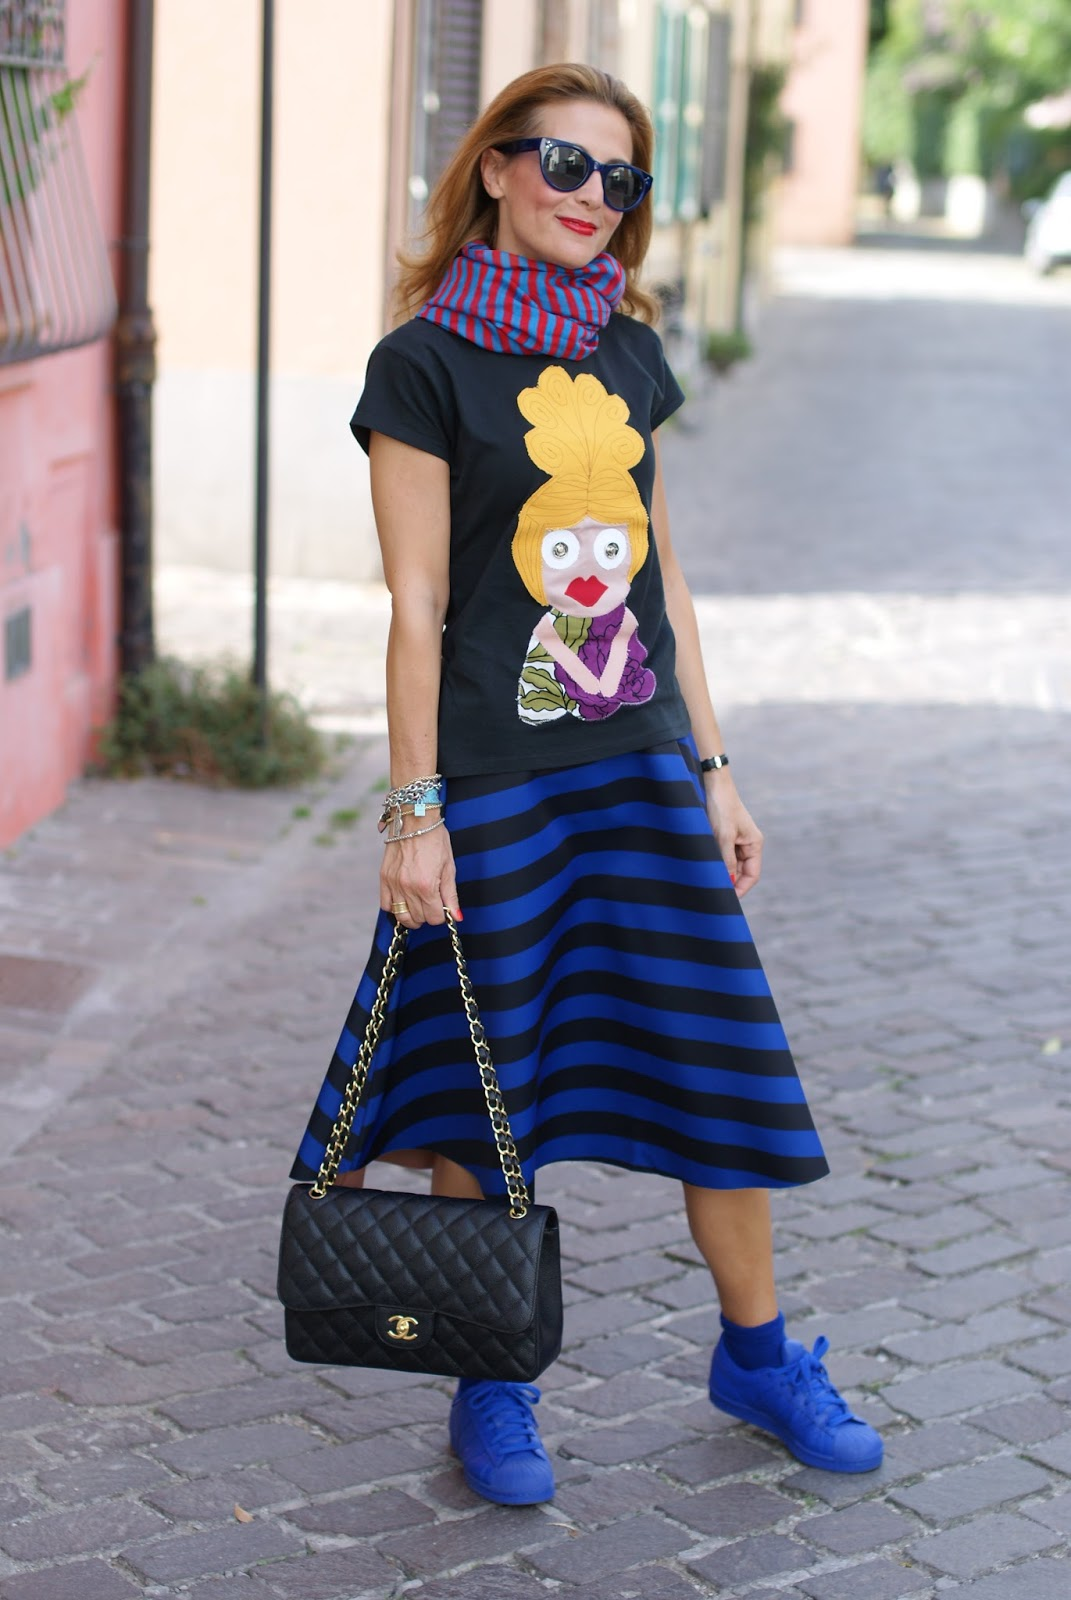 adidas sneakers, Chanel 2.55 bag and Choies striped midi skirt on Fashion and Cookies fashion blog, fashion blogger style